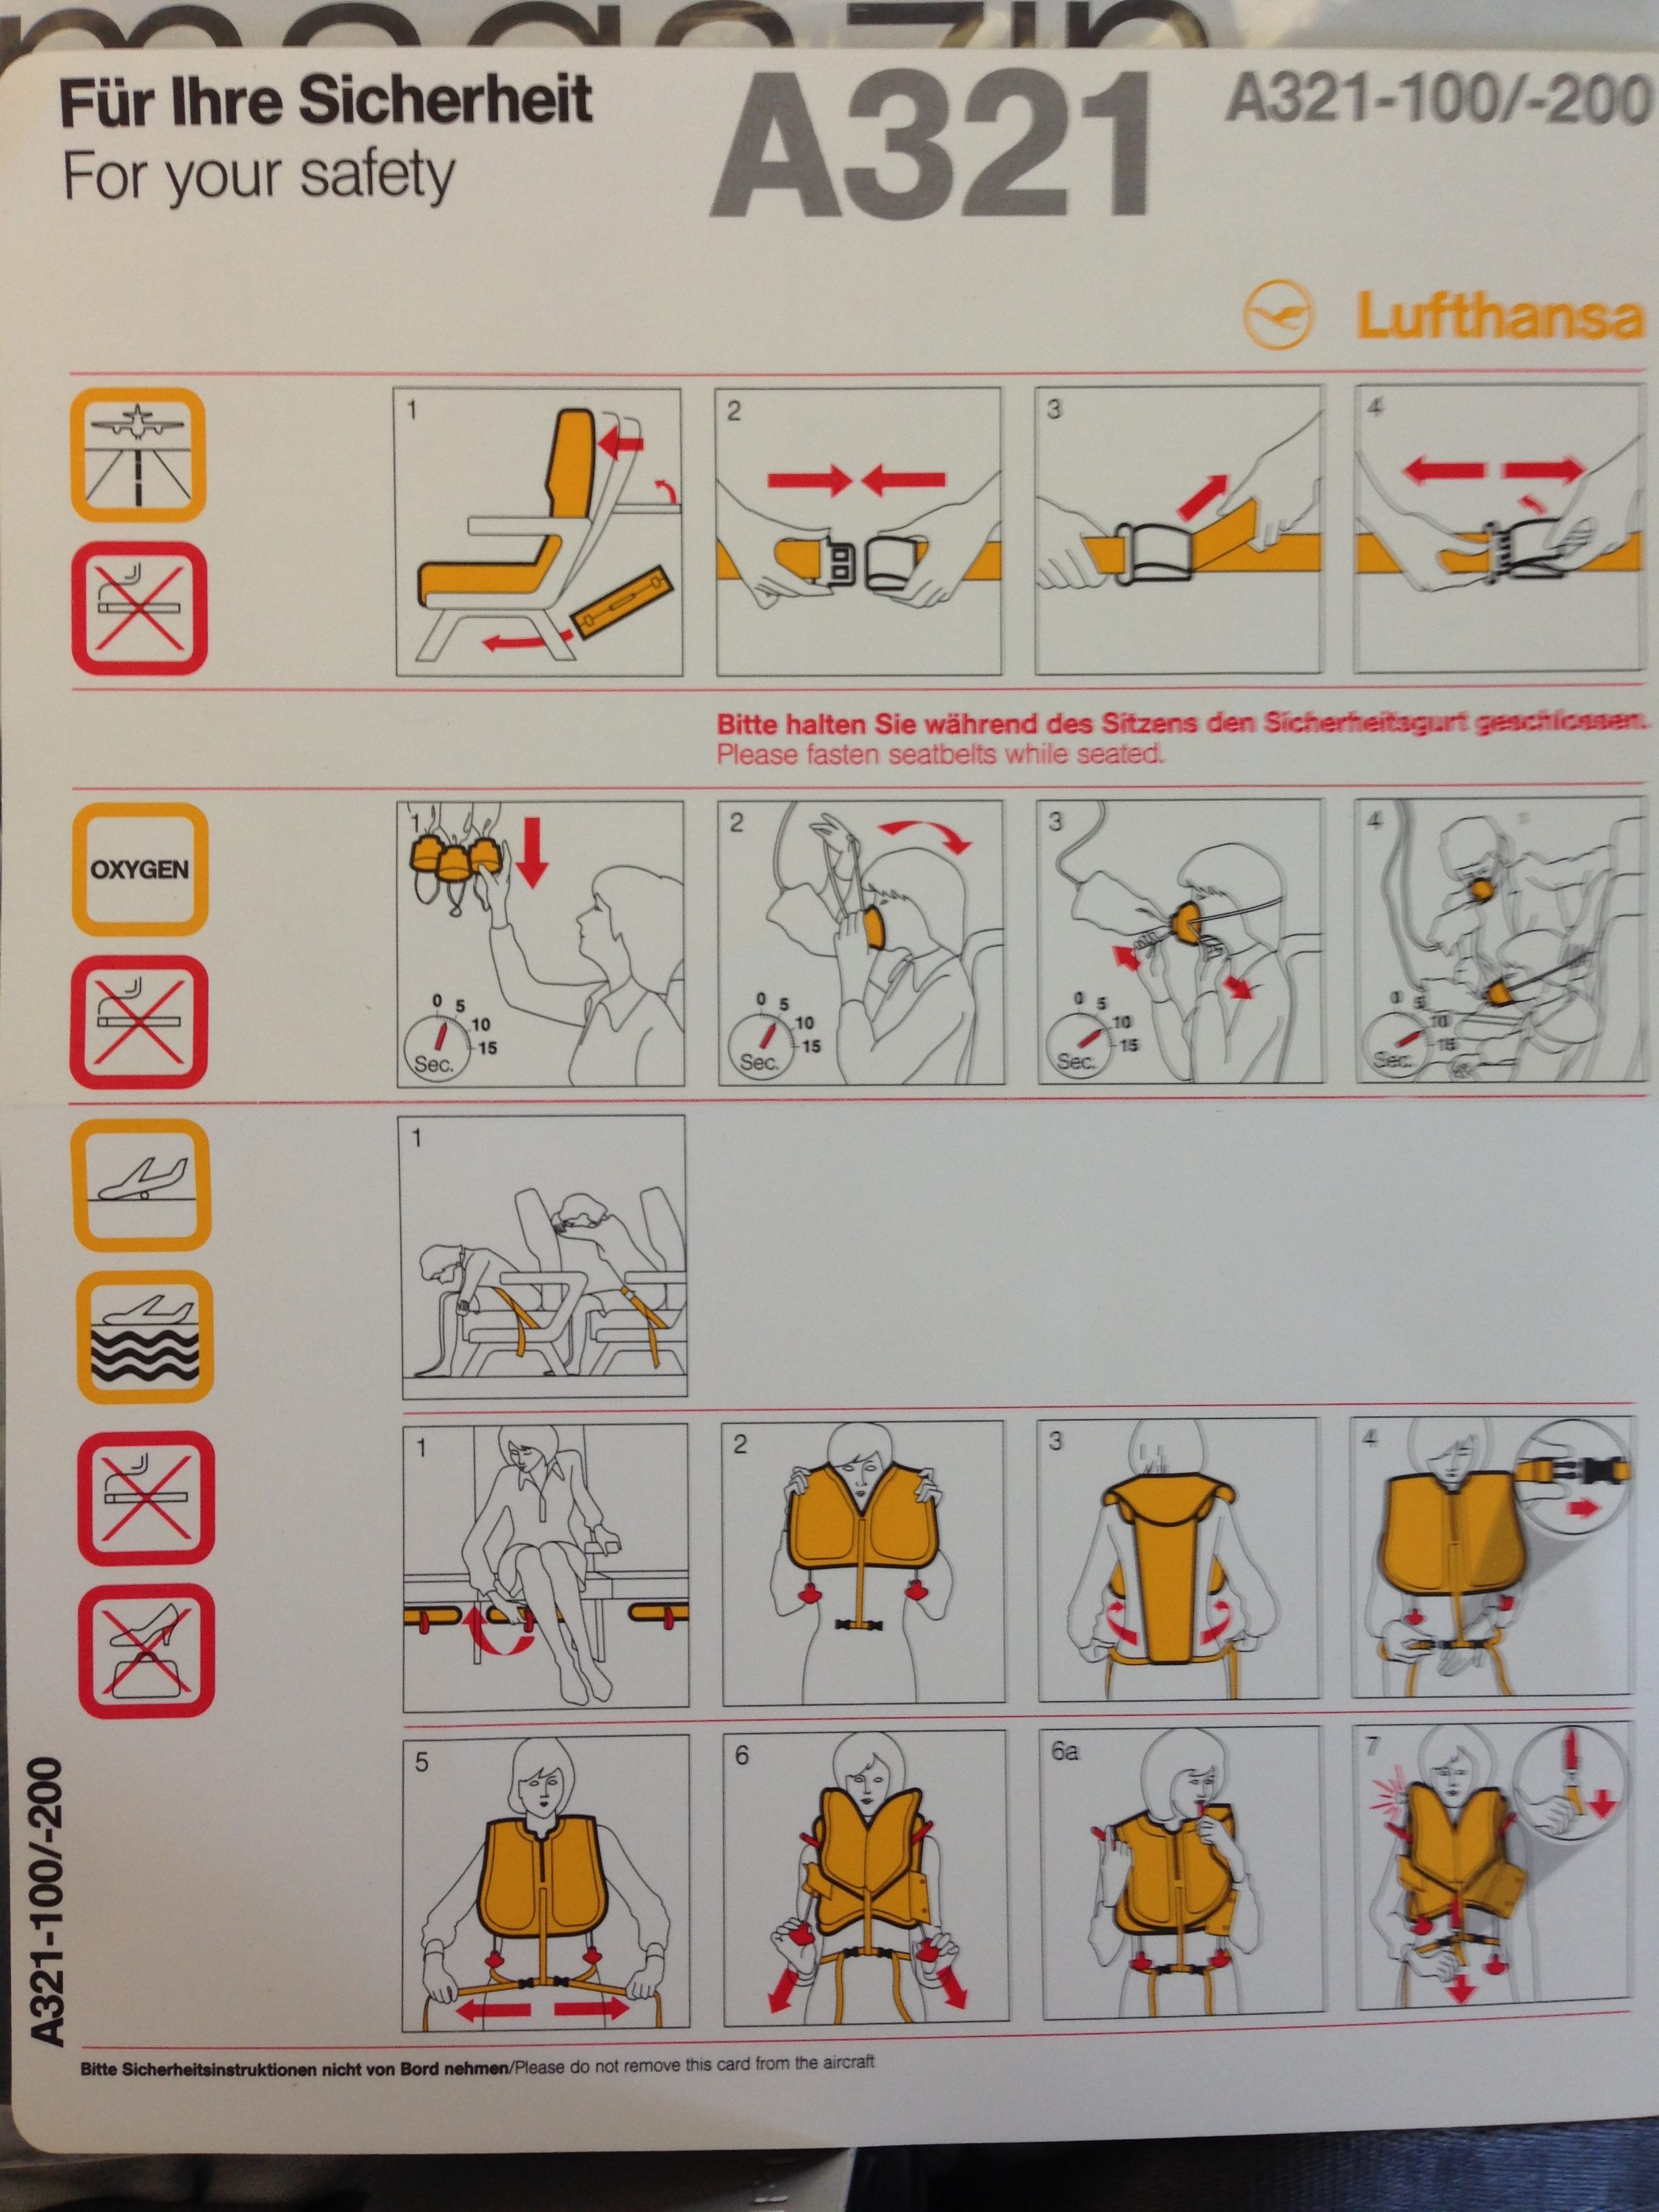 EasyJet - LH Instructions user experience